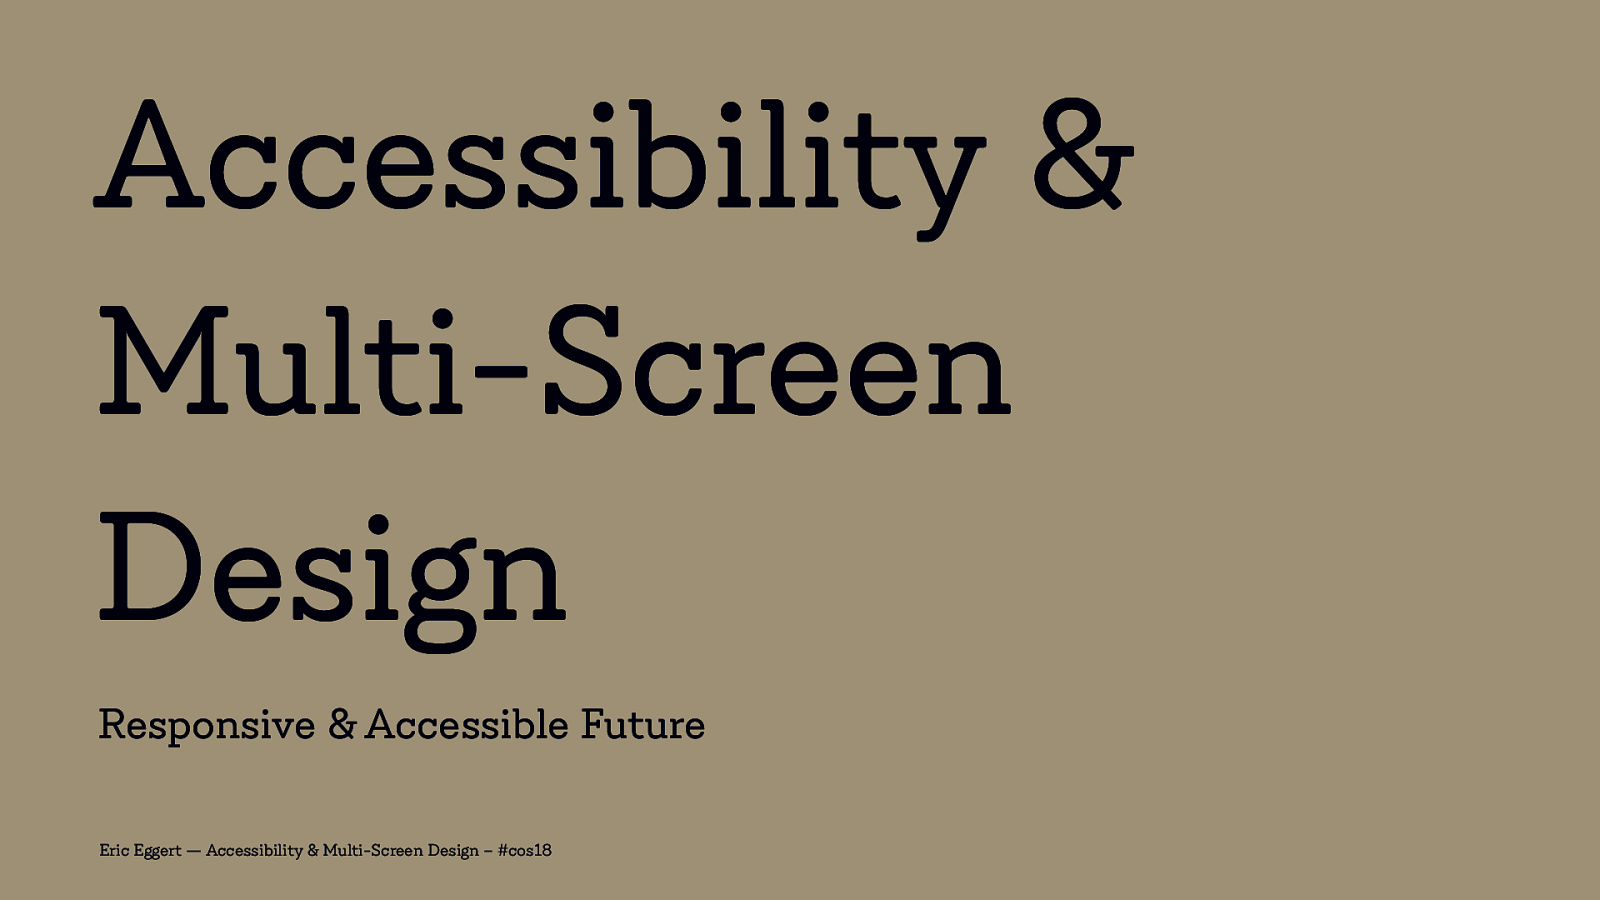 Accessibility & Multi-Screen Design: Responsive & Accessible Future